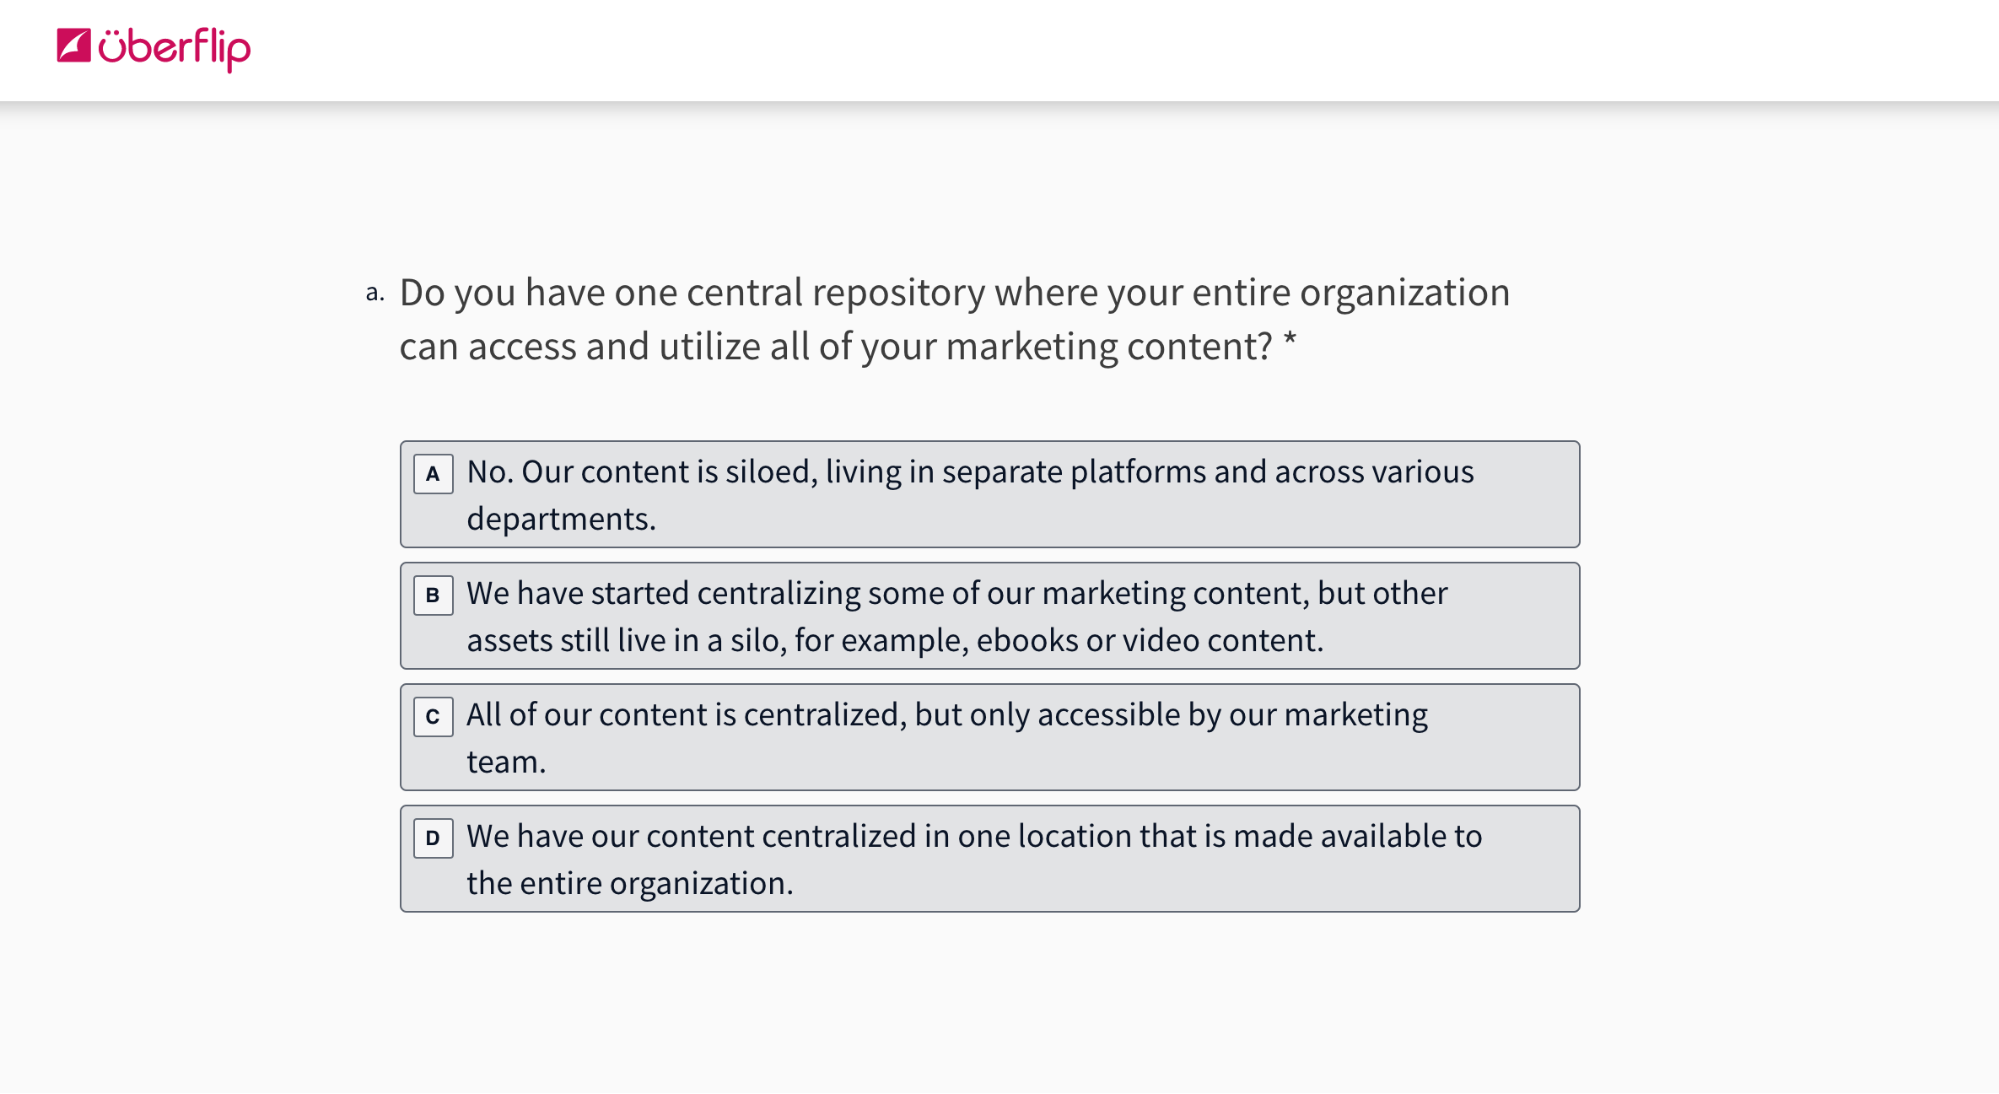 Depiction of Content Experience Maturity Assessment question on a webpage